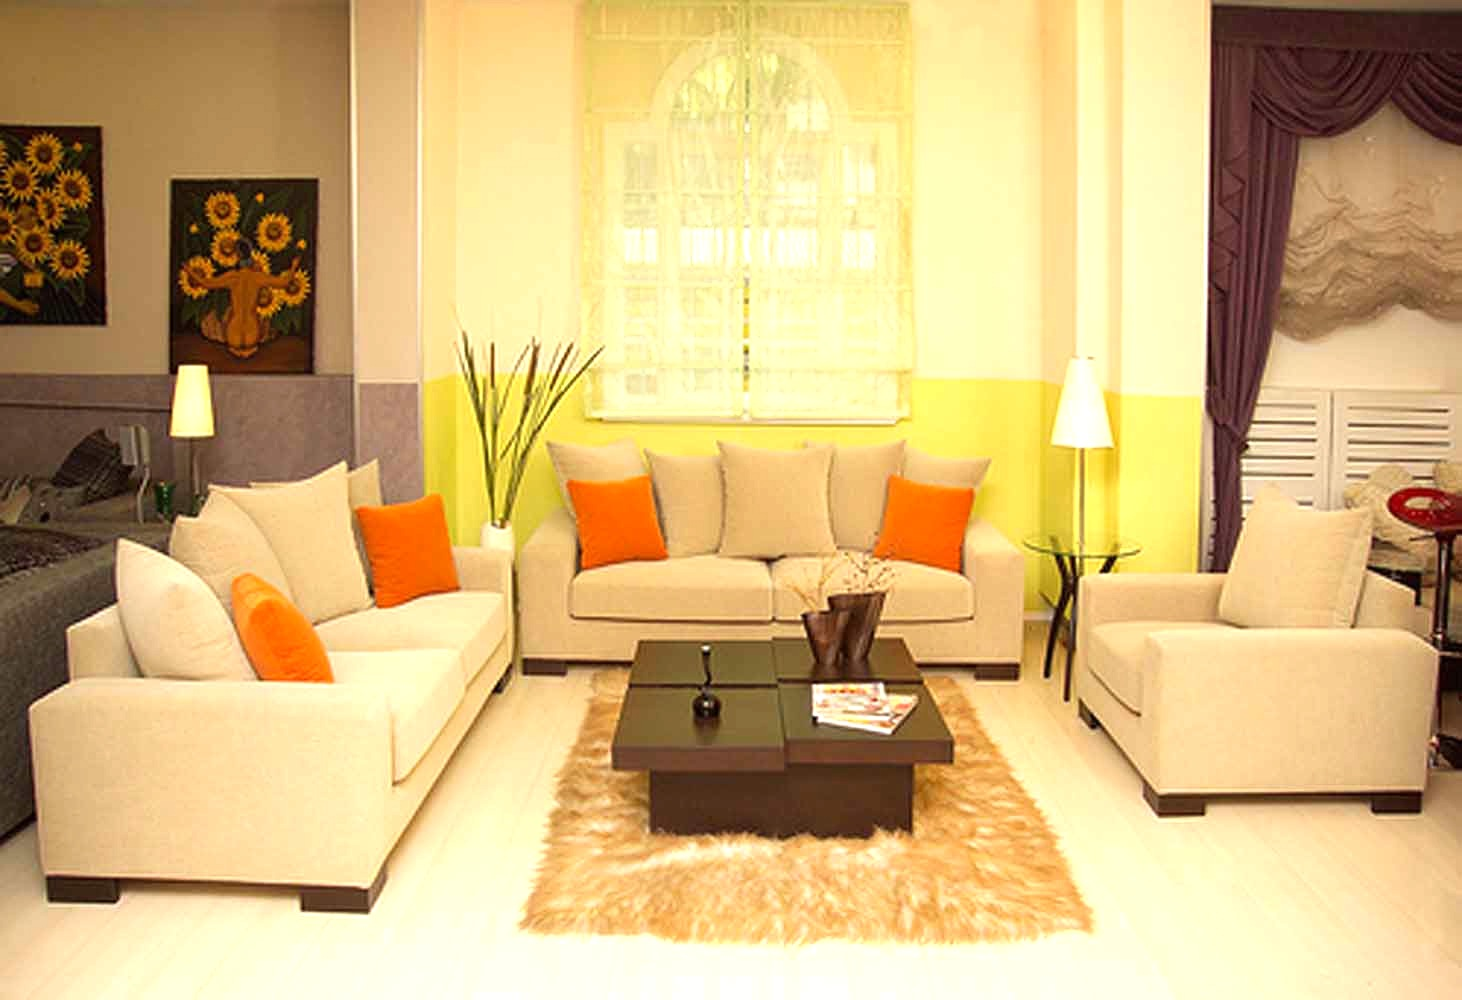 VIEW IN GALLERY Modern And Latest Sofa Sets Design For Living Room